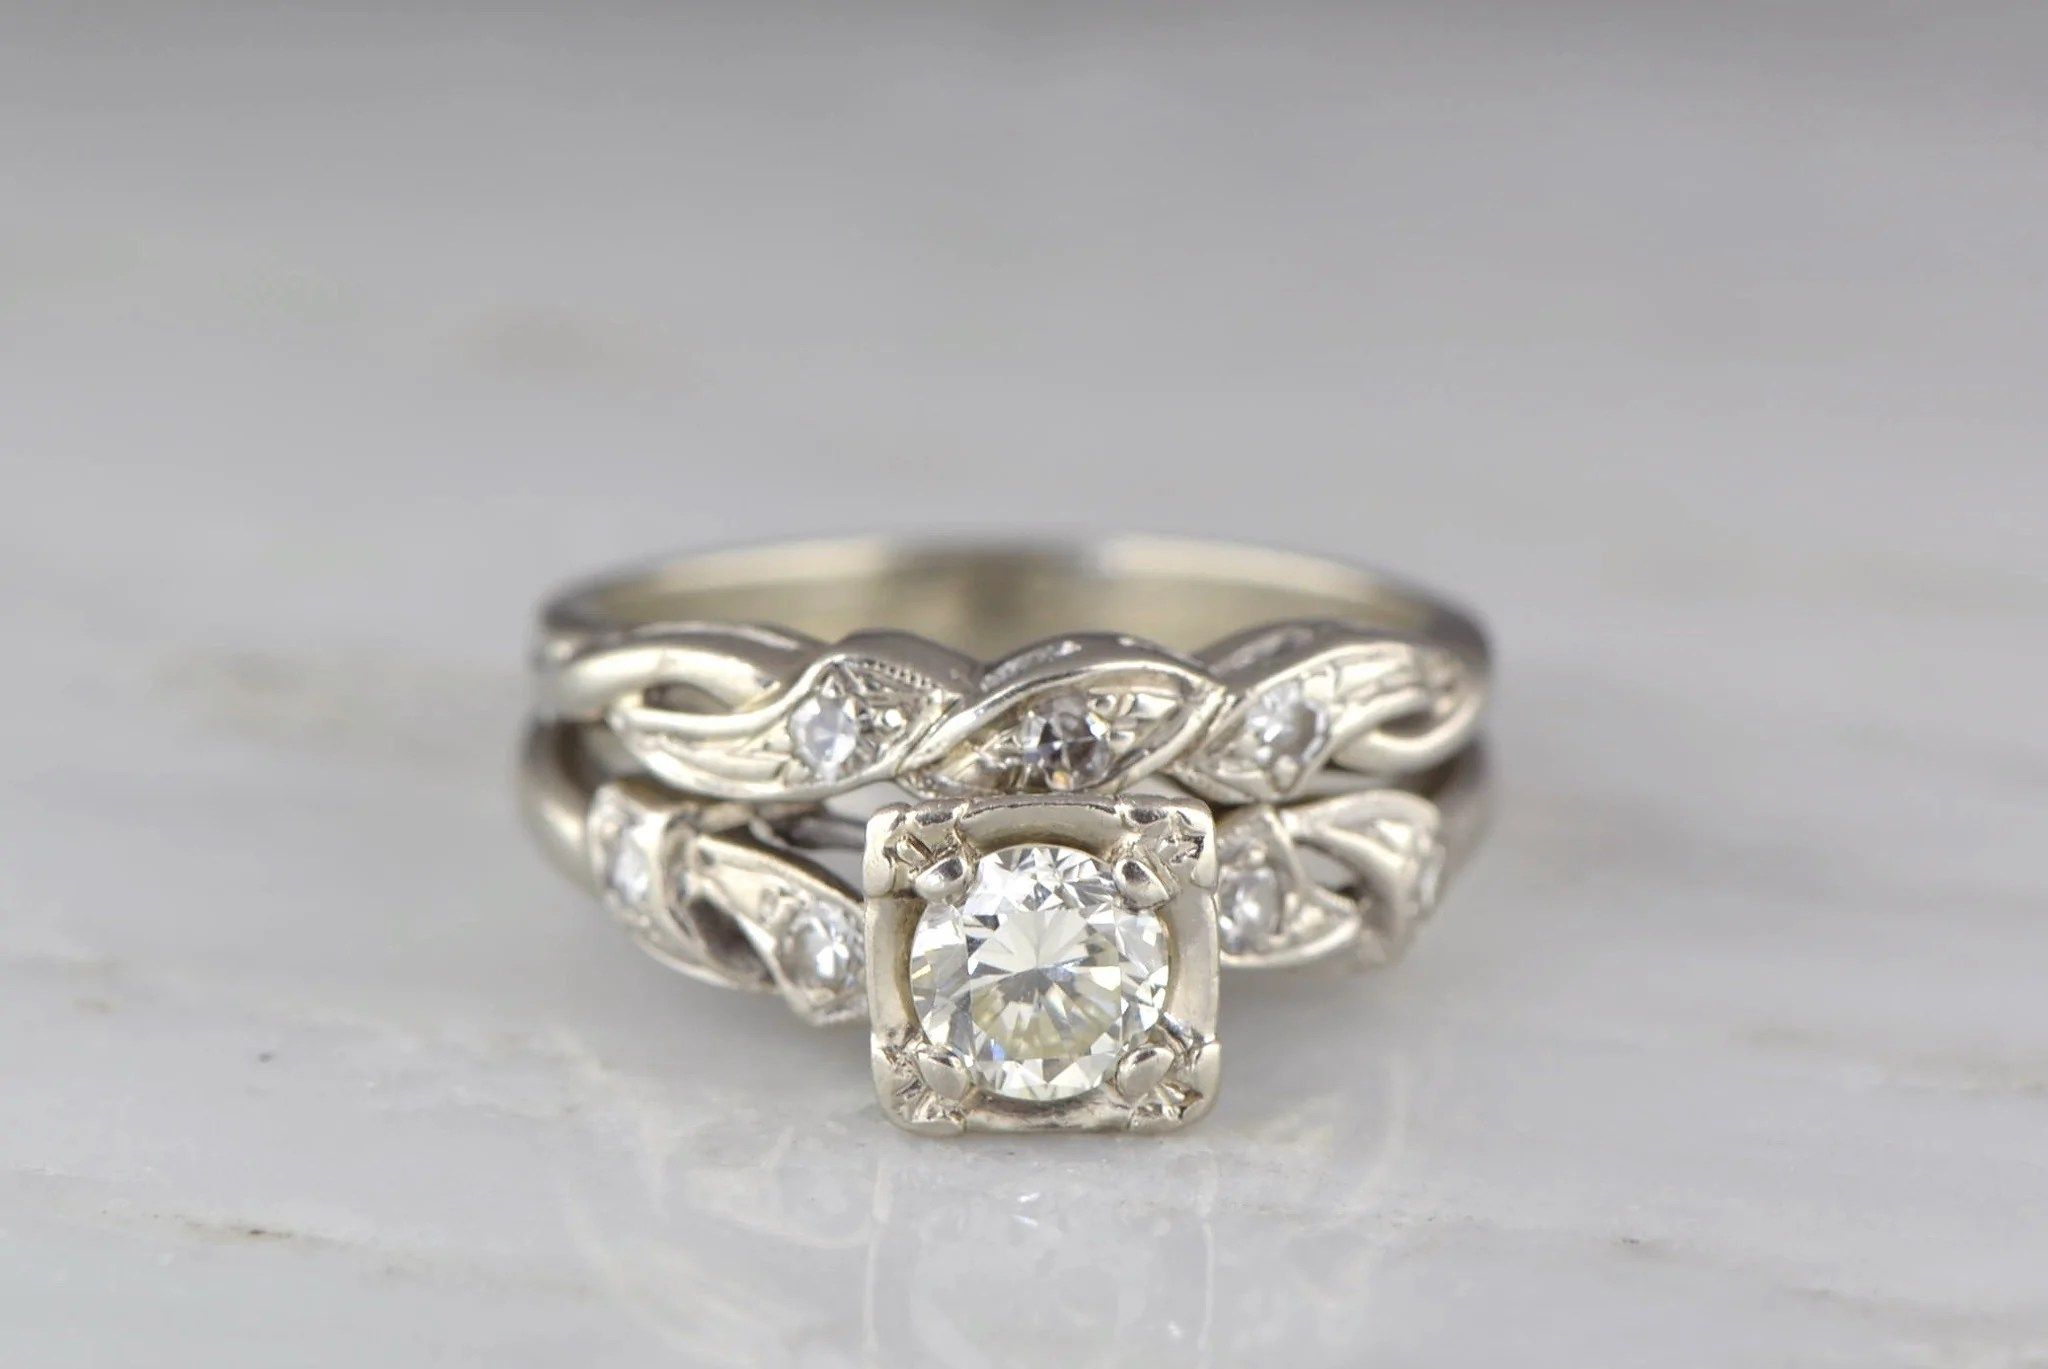 pp art deco wedding band 78ctw Art Deco 57ct Cottage Chic Diamond and White Gold Engagement Ring and Wedding Band Set